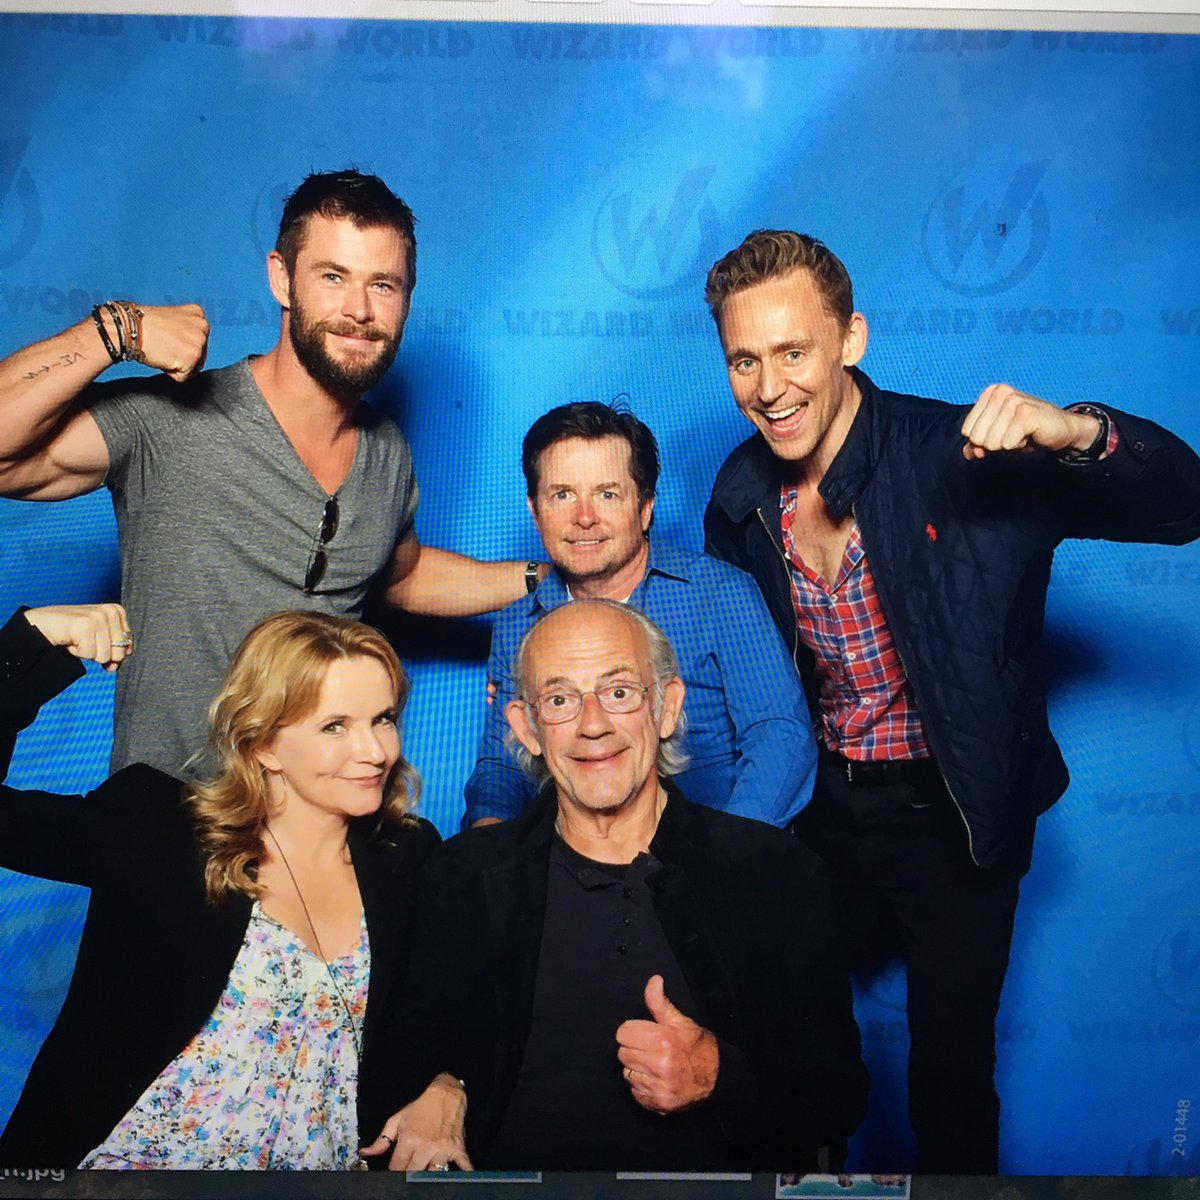 Just to good to keep to myself @realmikefox @chrishemsworth @twhiddleston #doc https://t.co/GPhNF7wez6